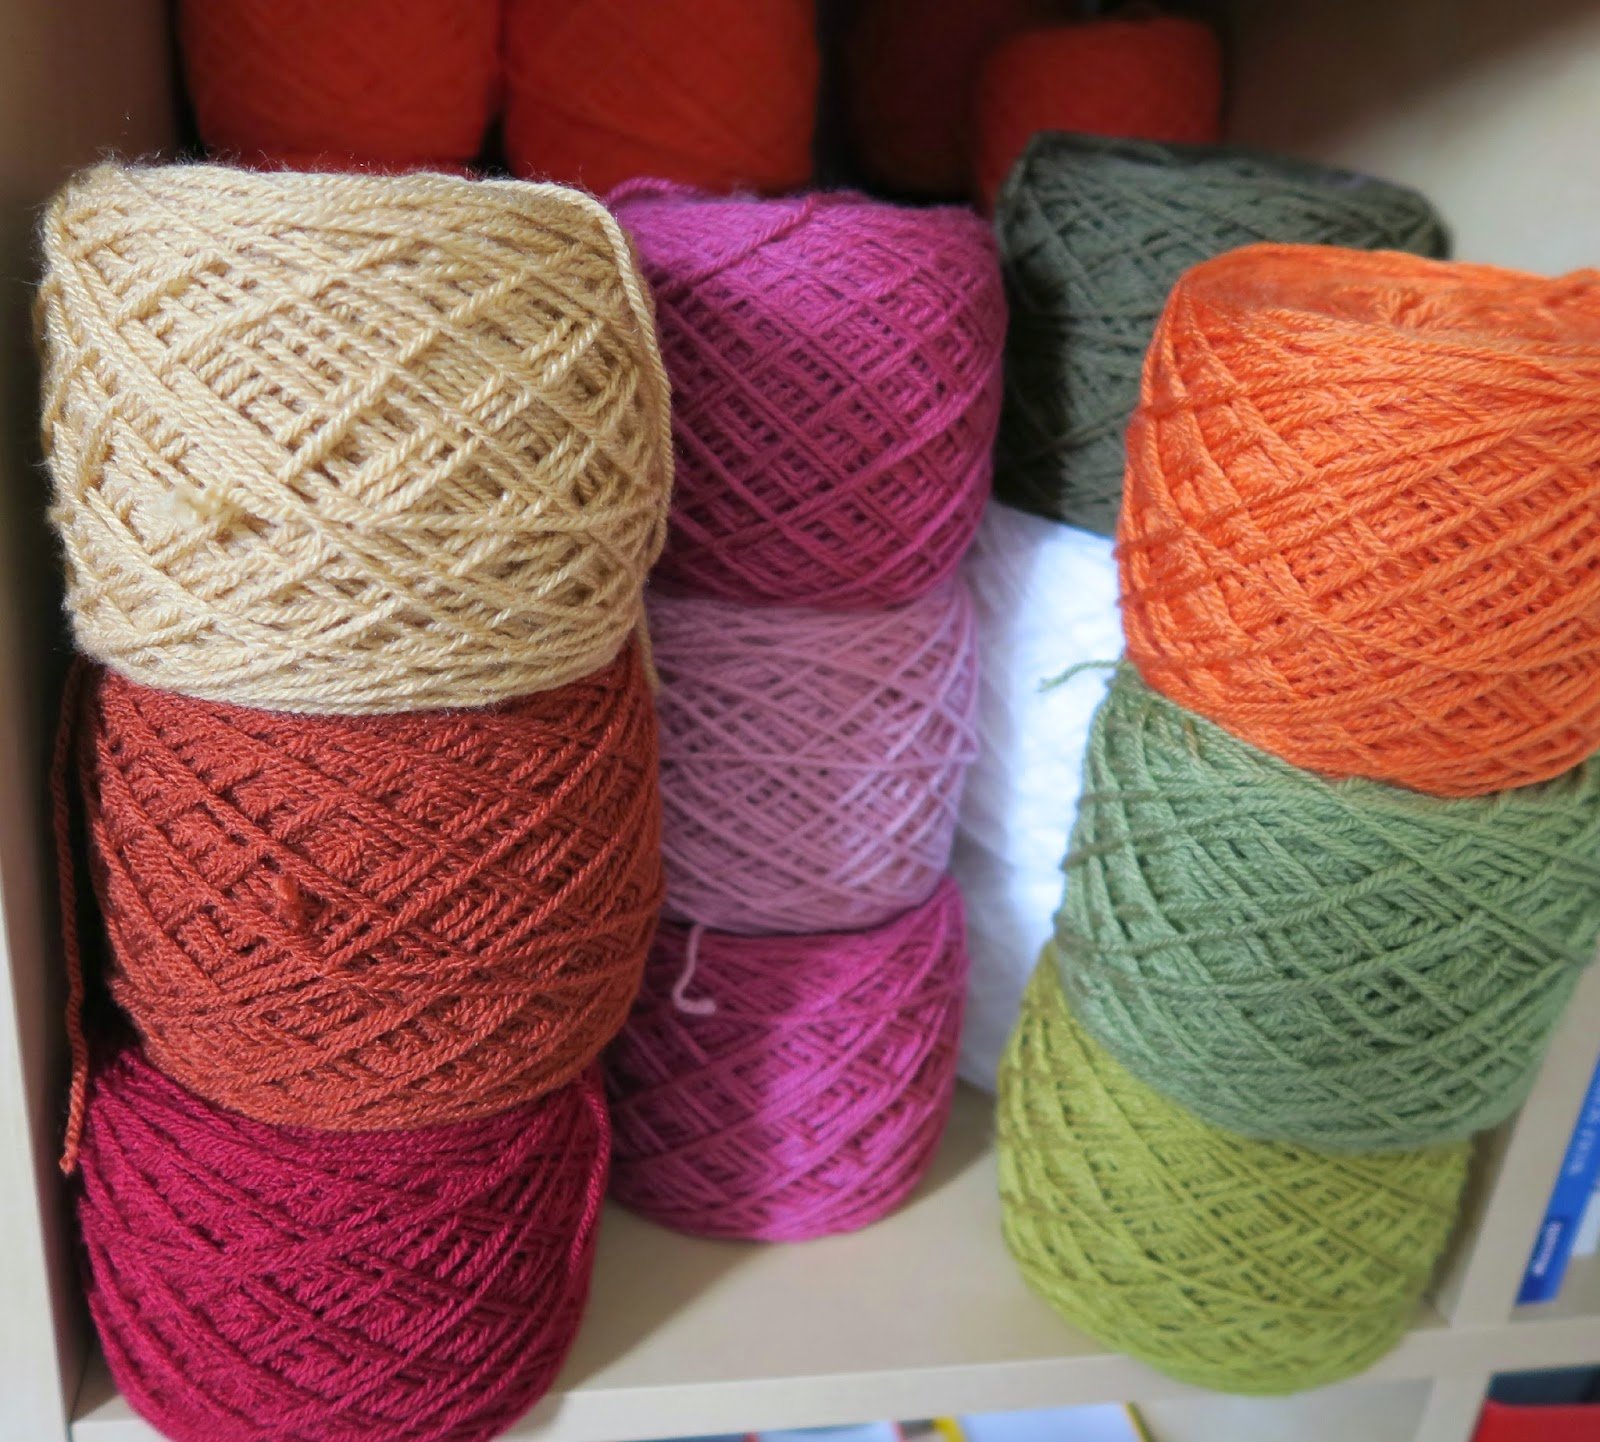 Crocheting Yarn Uk : Crochet between worlds: Decluttering and Organising the Yarn Stash